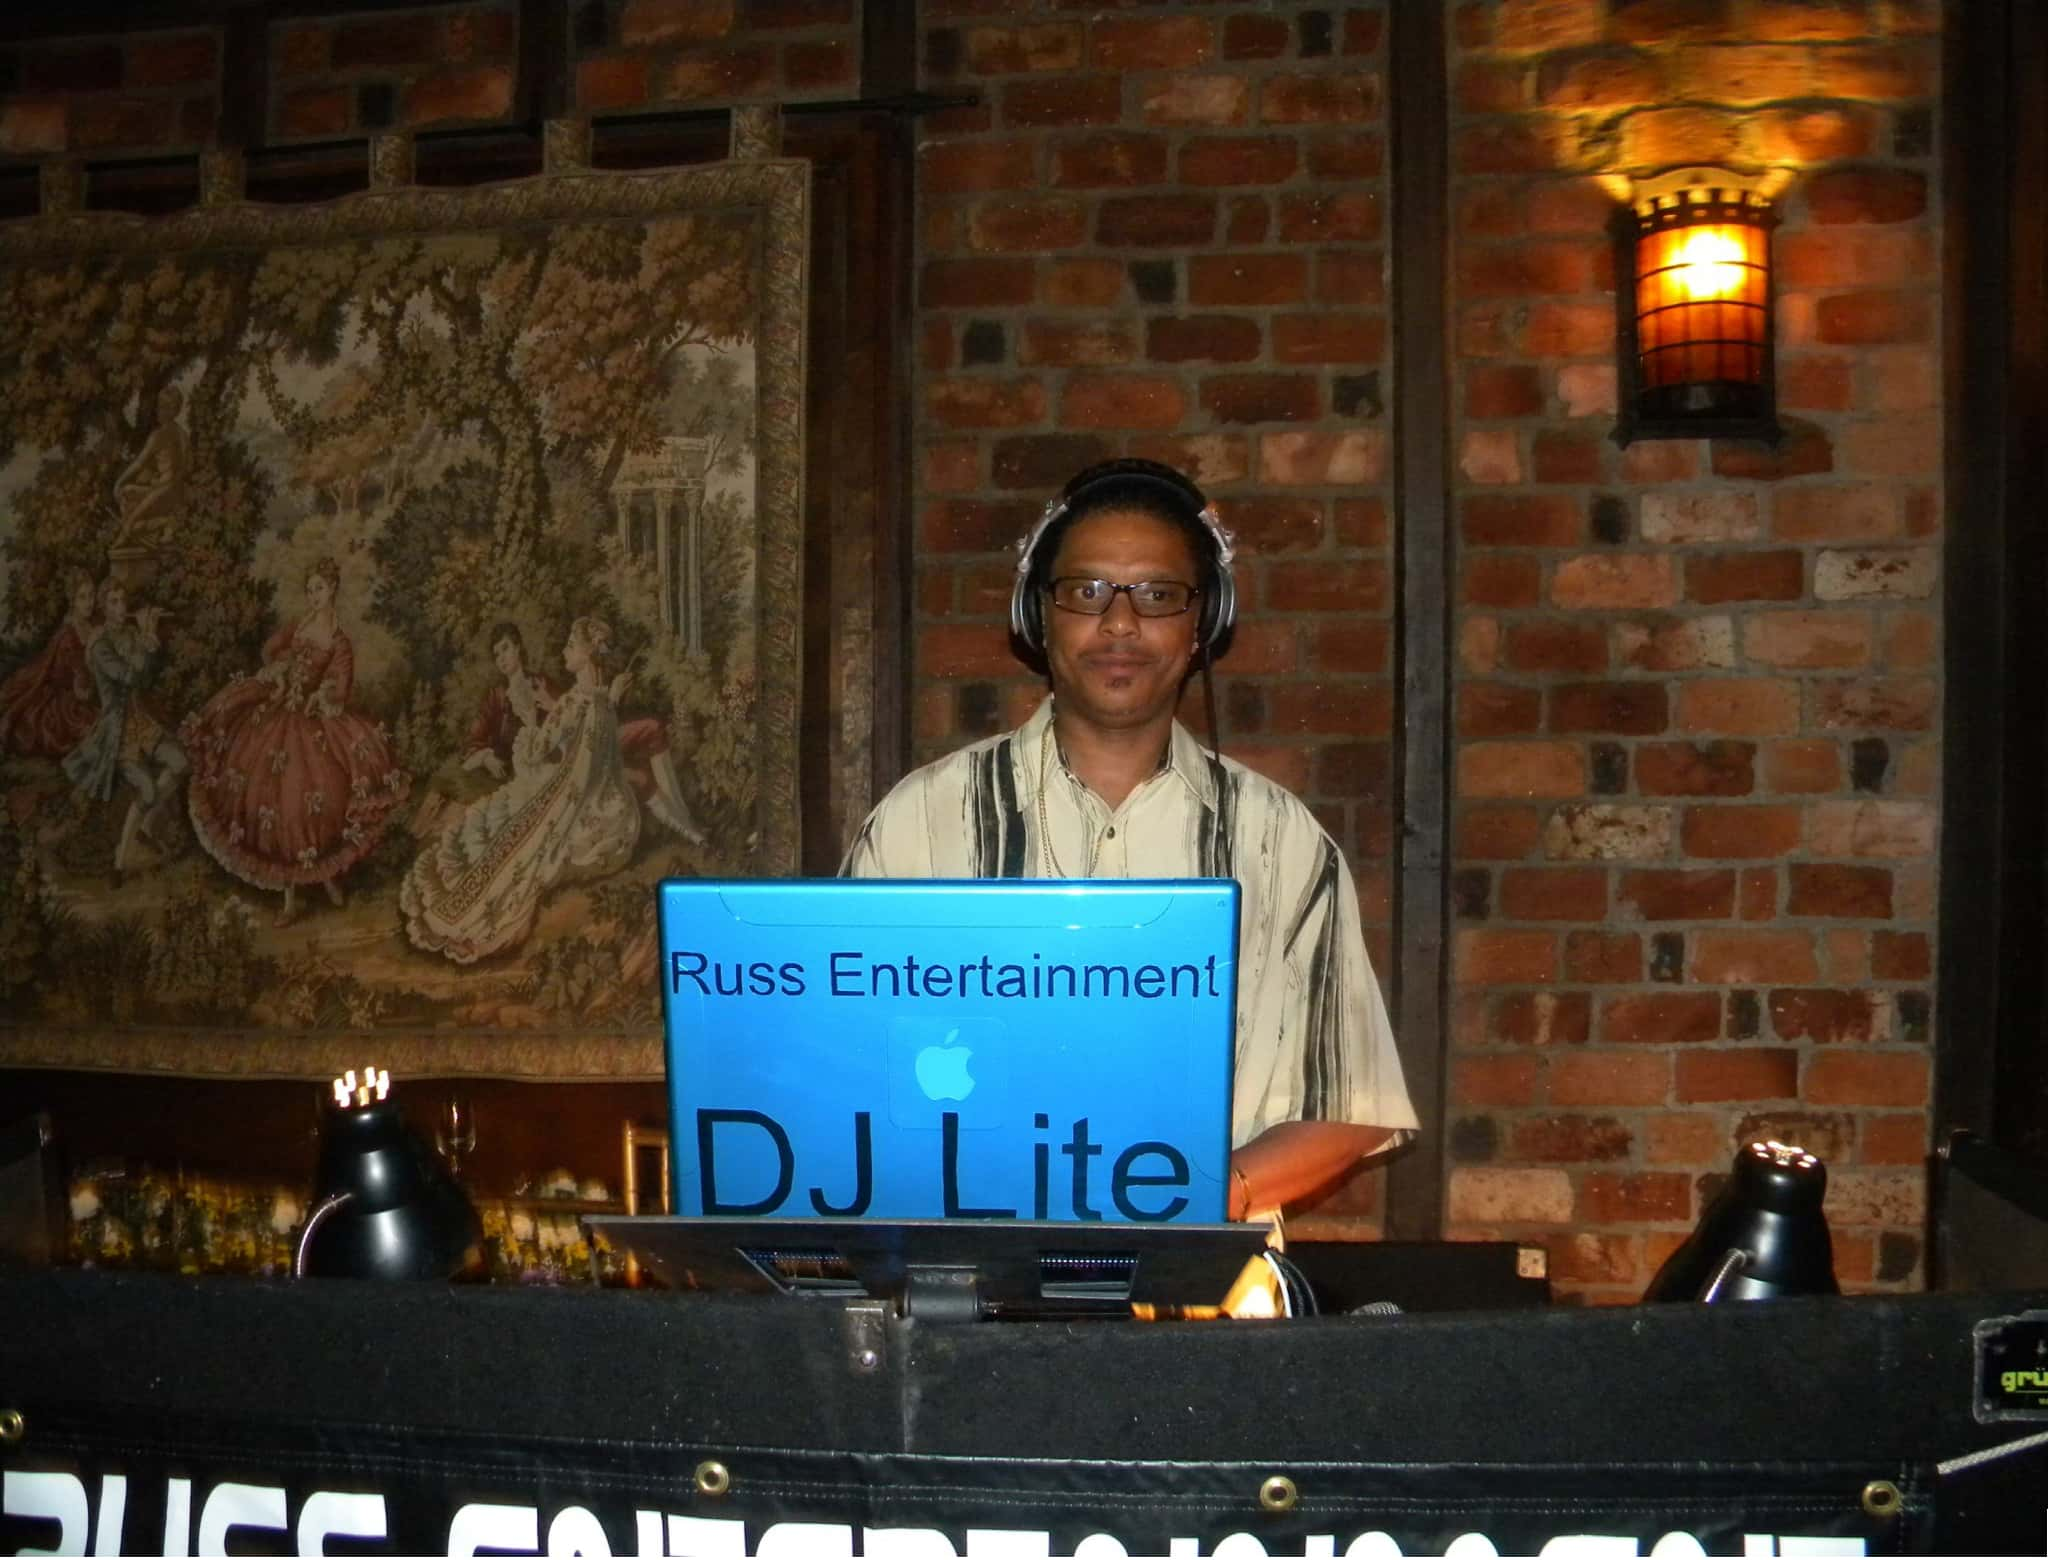 DJLITE EVERY SATURDAY 5PM TO 7PM